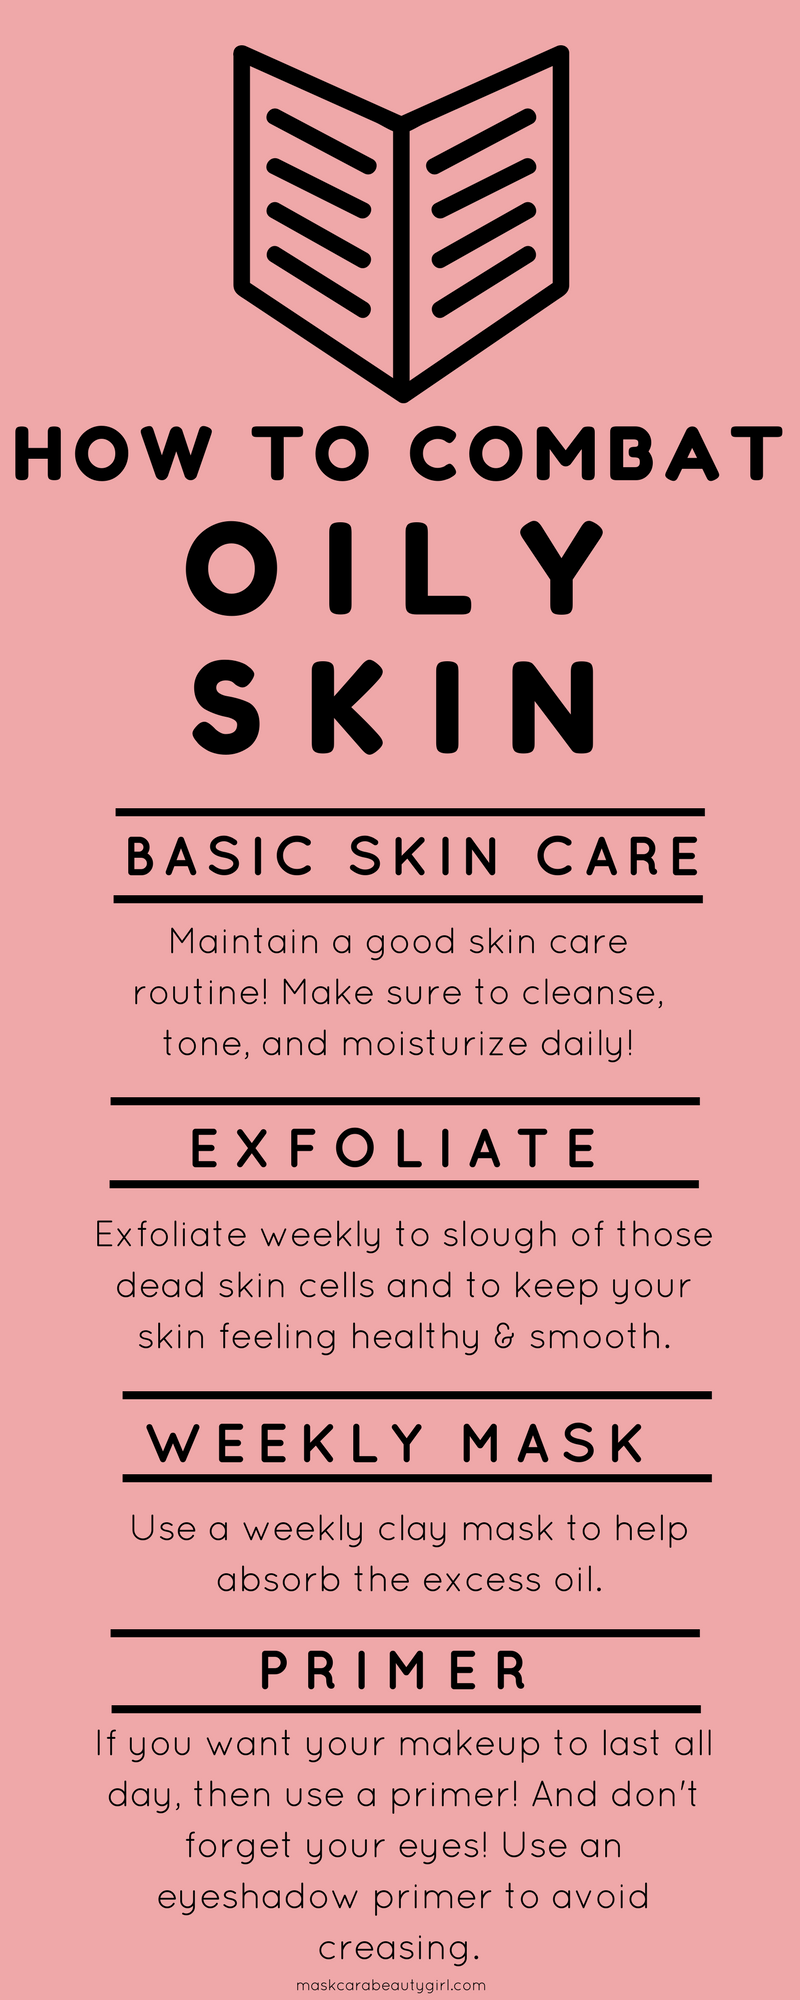 Oily Skin Care Tips with Maskcara Beauty Girl at www.maskcarabeautygirl.com